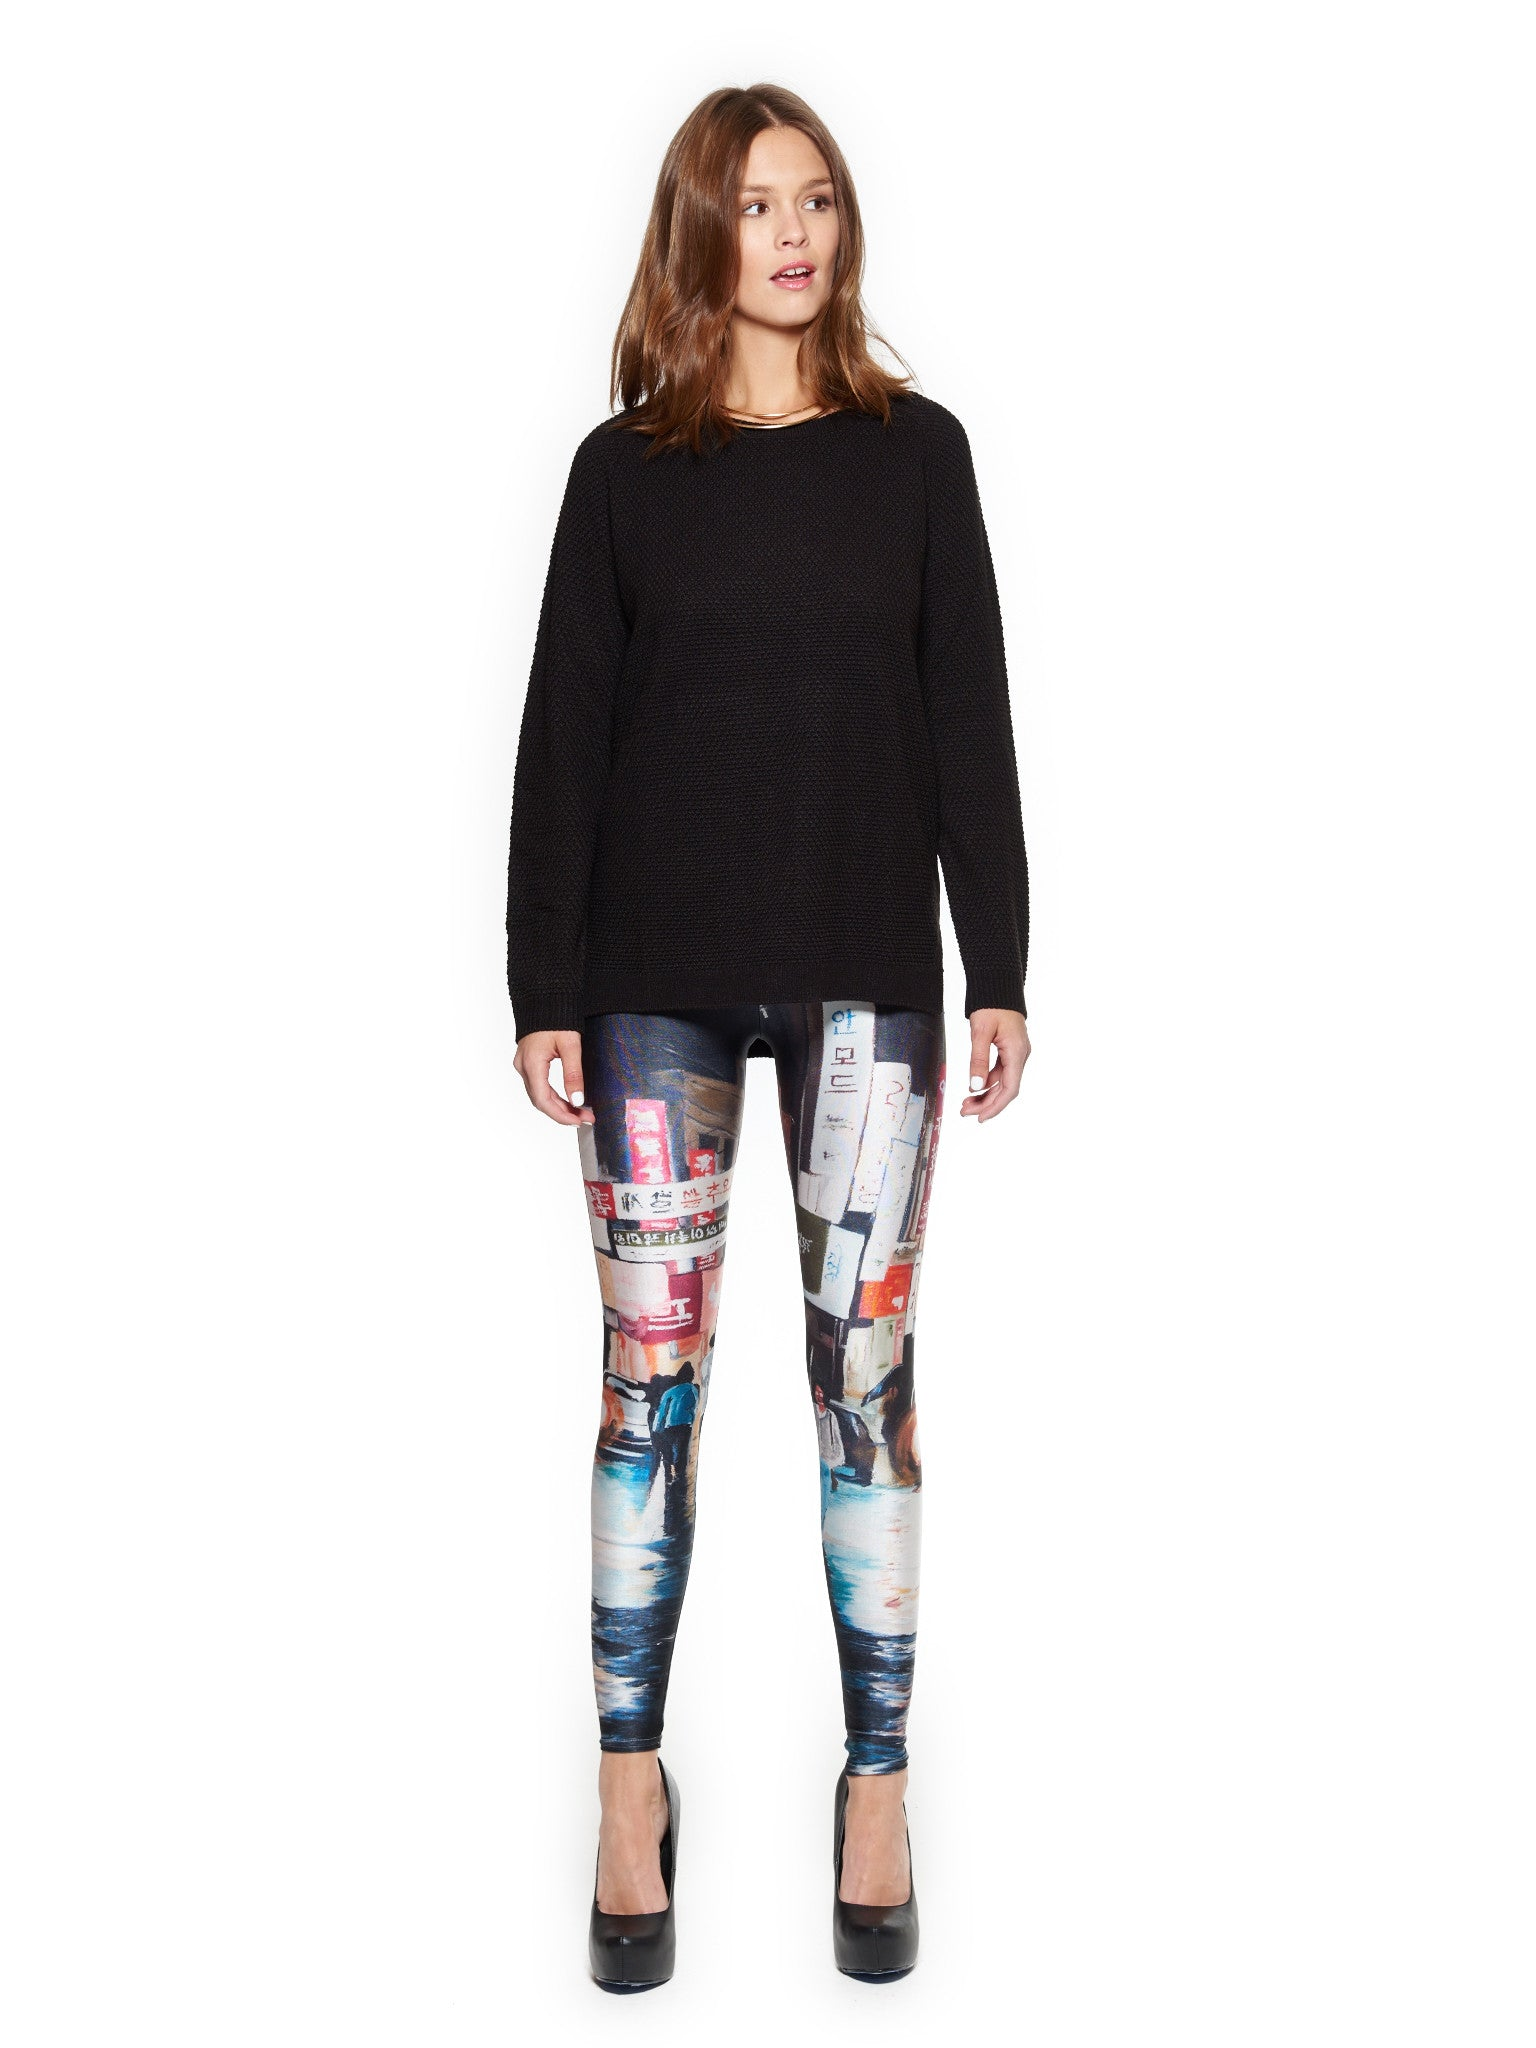 Reflections in Nonsan Queen West Leggings - Nuvango  - 1